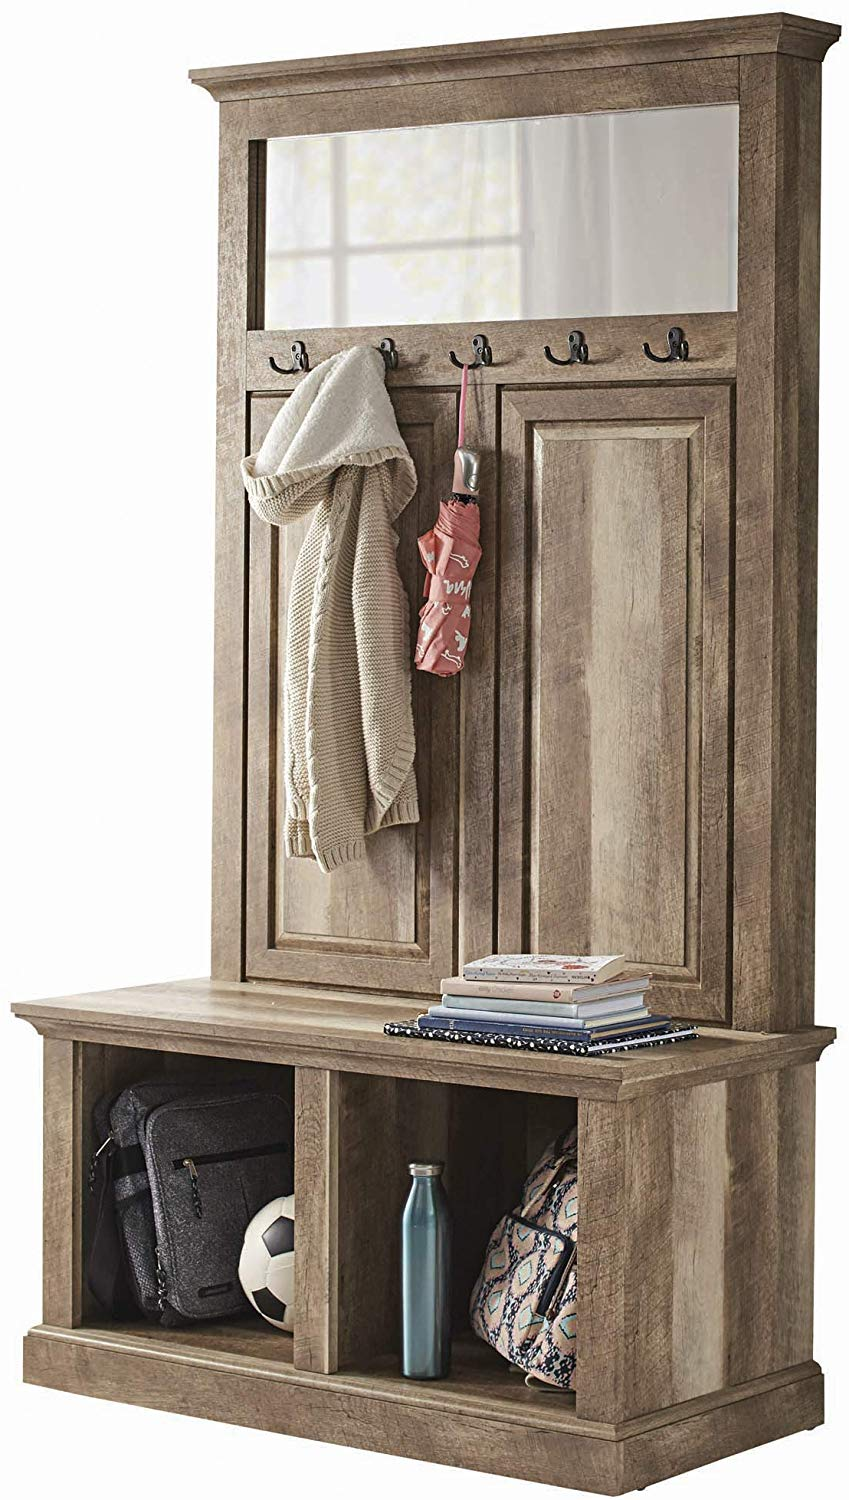 Strange Hall Tree Storage Bench Shelves Entryway Furniture My Evergreenethics Interior Chair Design Evergreenethicsorg